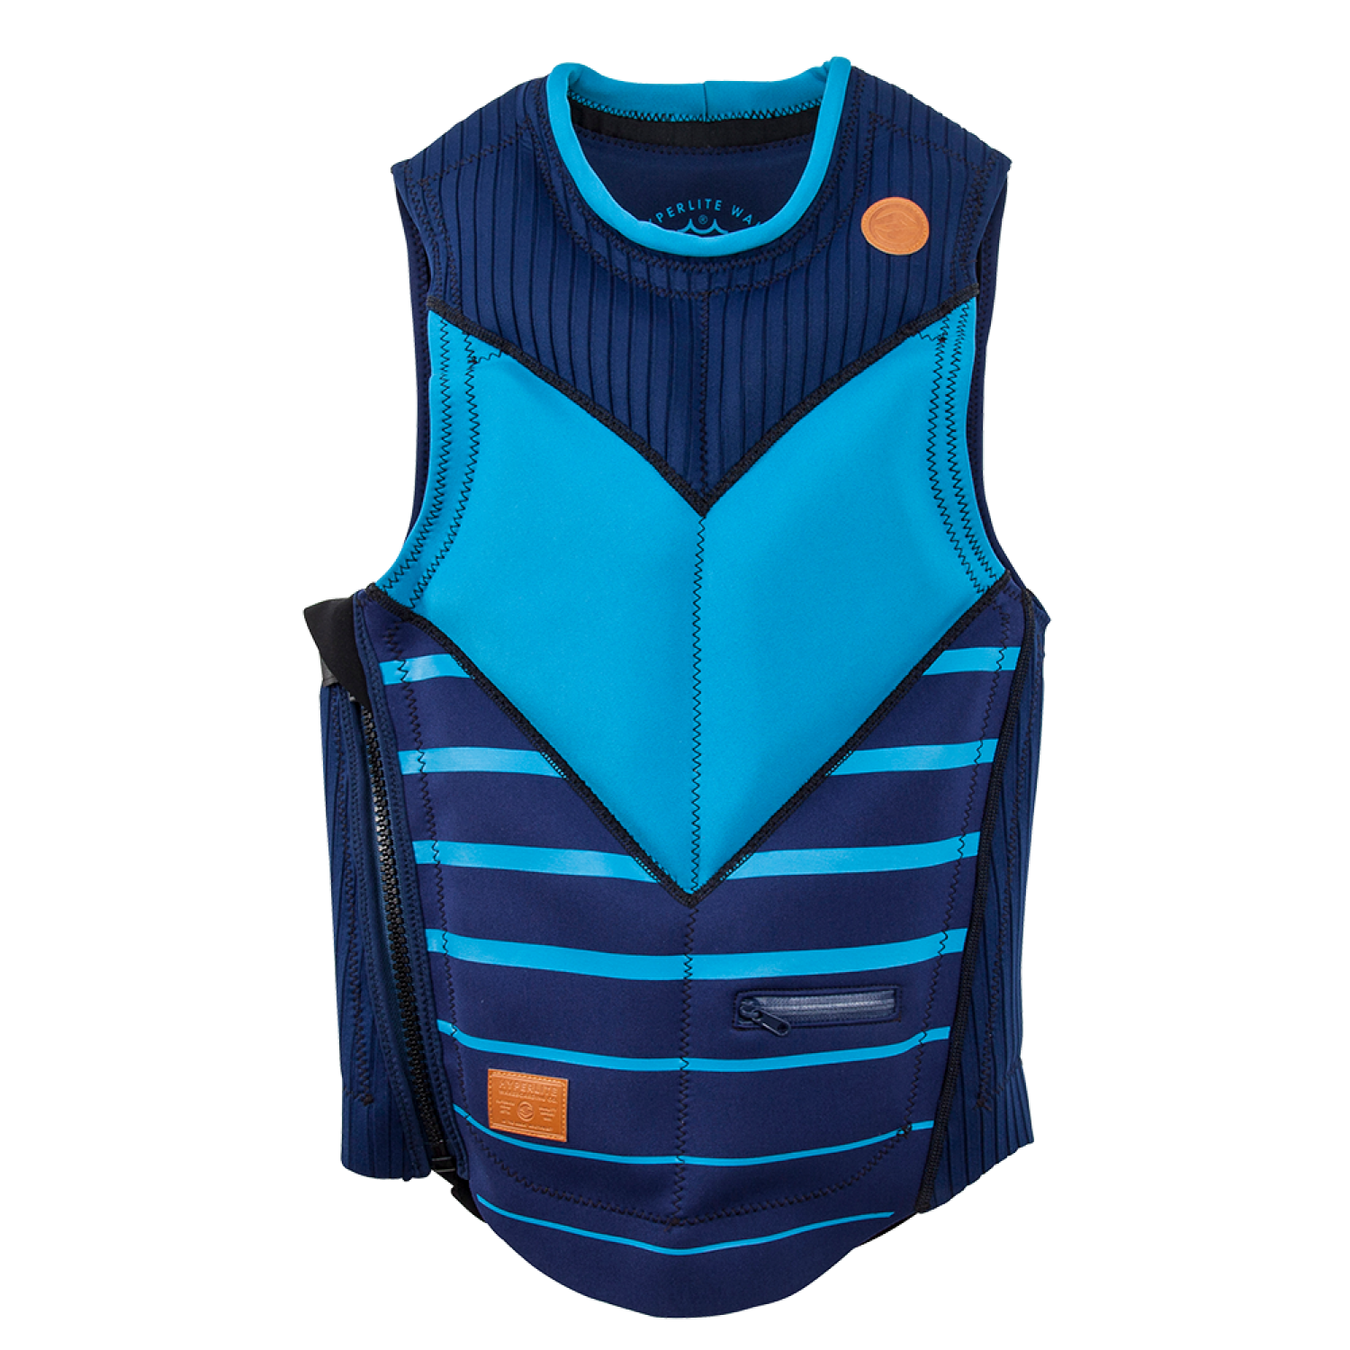 Buy Hyperlite Life Vests - 88 Gear